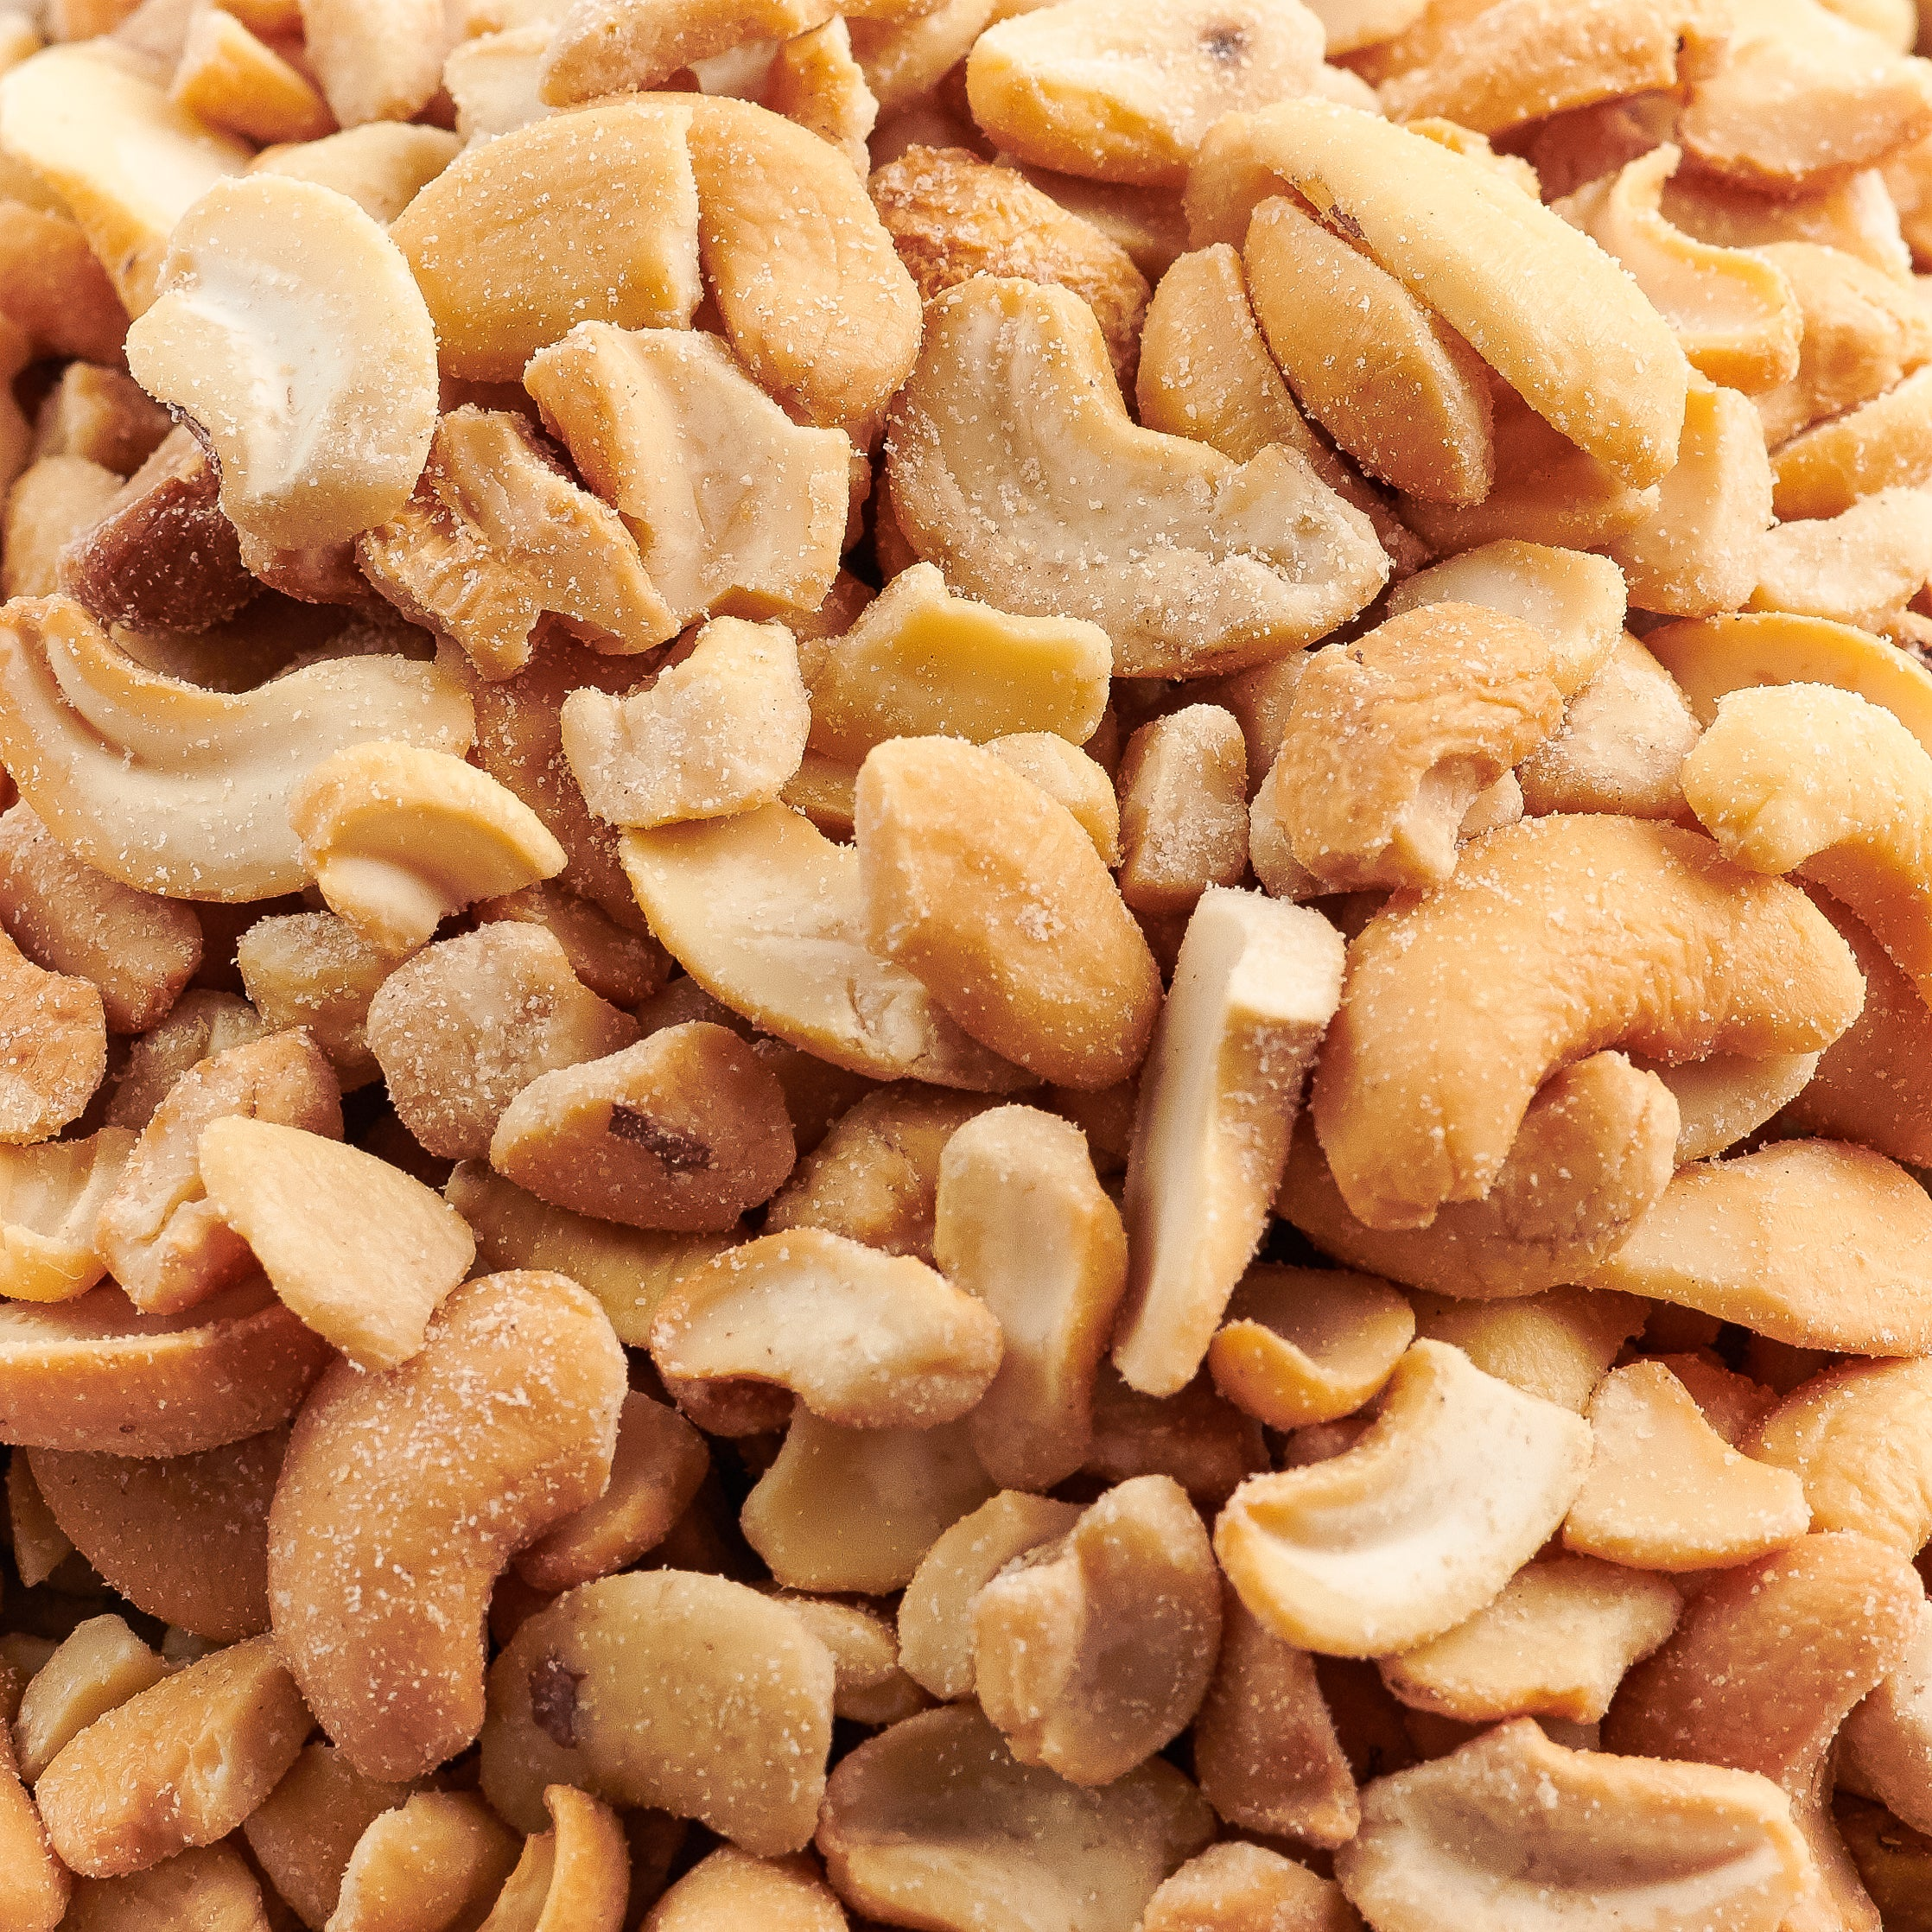 Cashew Pieces - 50 Pound Bulk Case